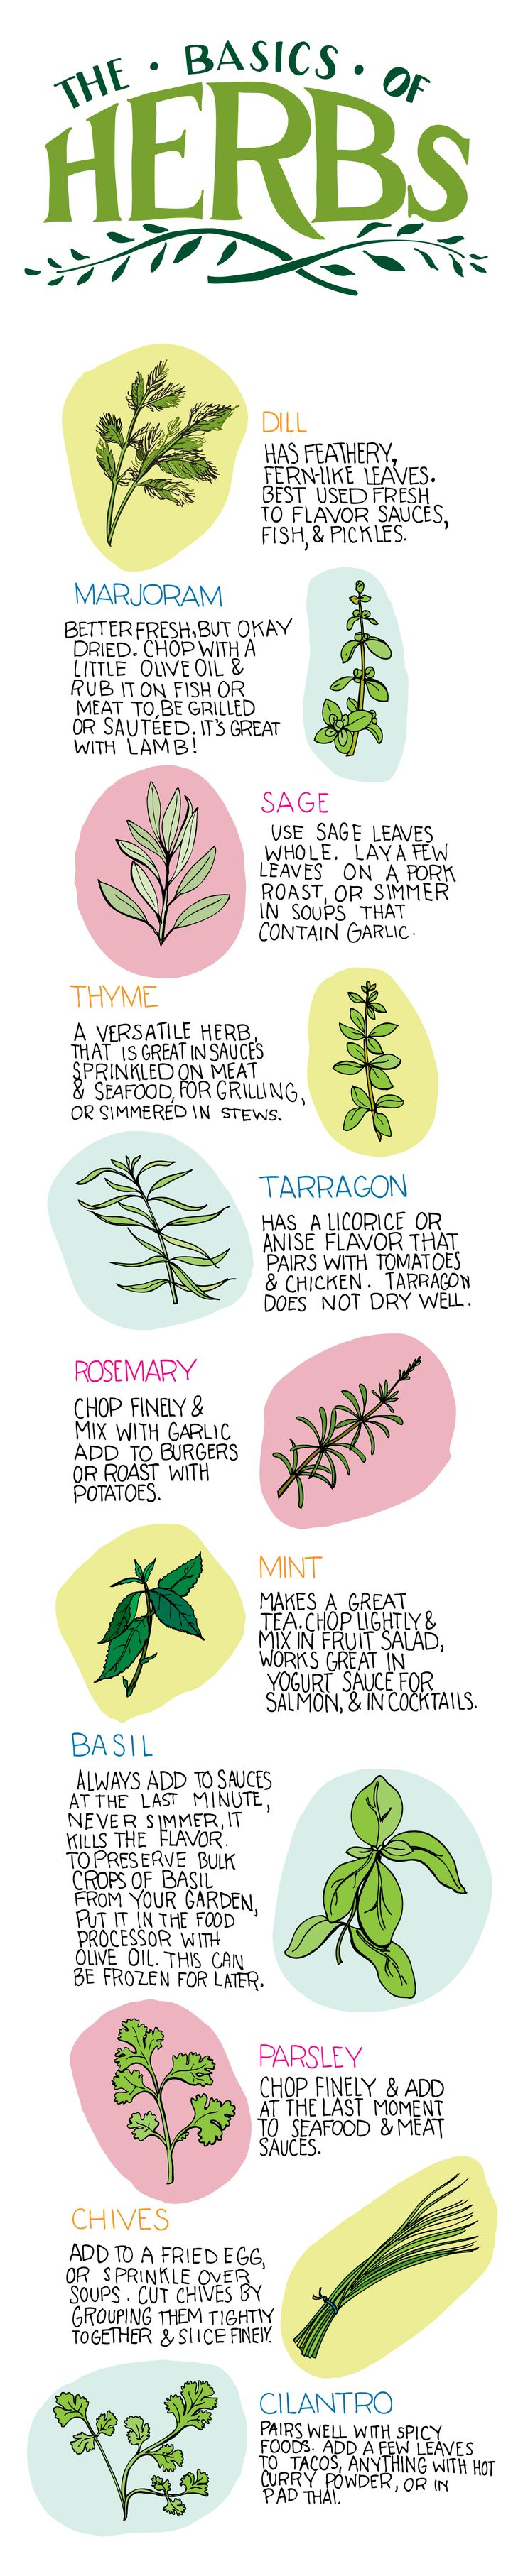 The Basics of Herbs